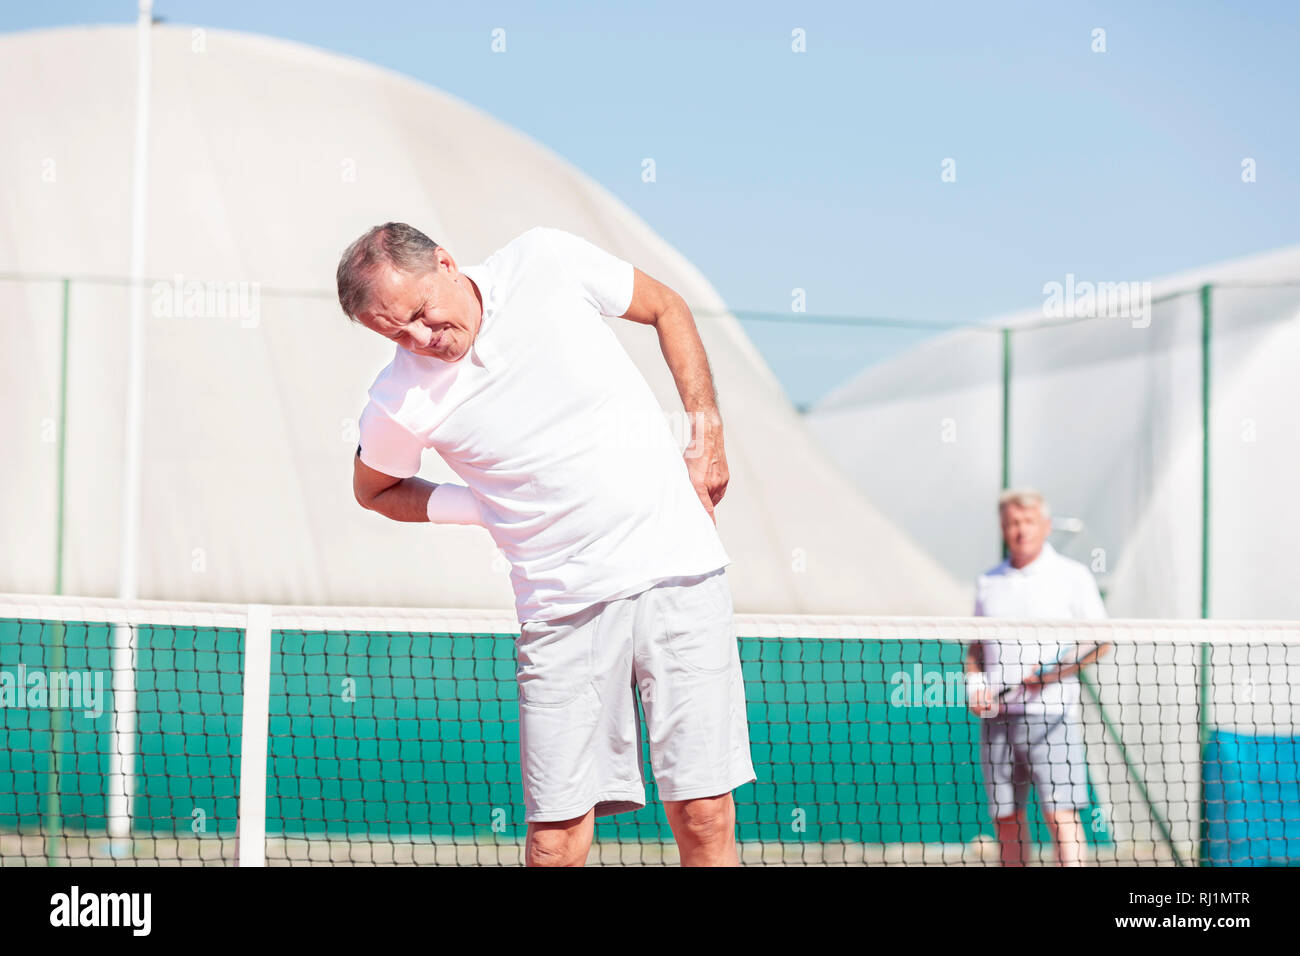 Senior man with backache while standing against friend during tennis match on sunny day - Stock Image